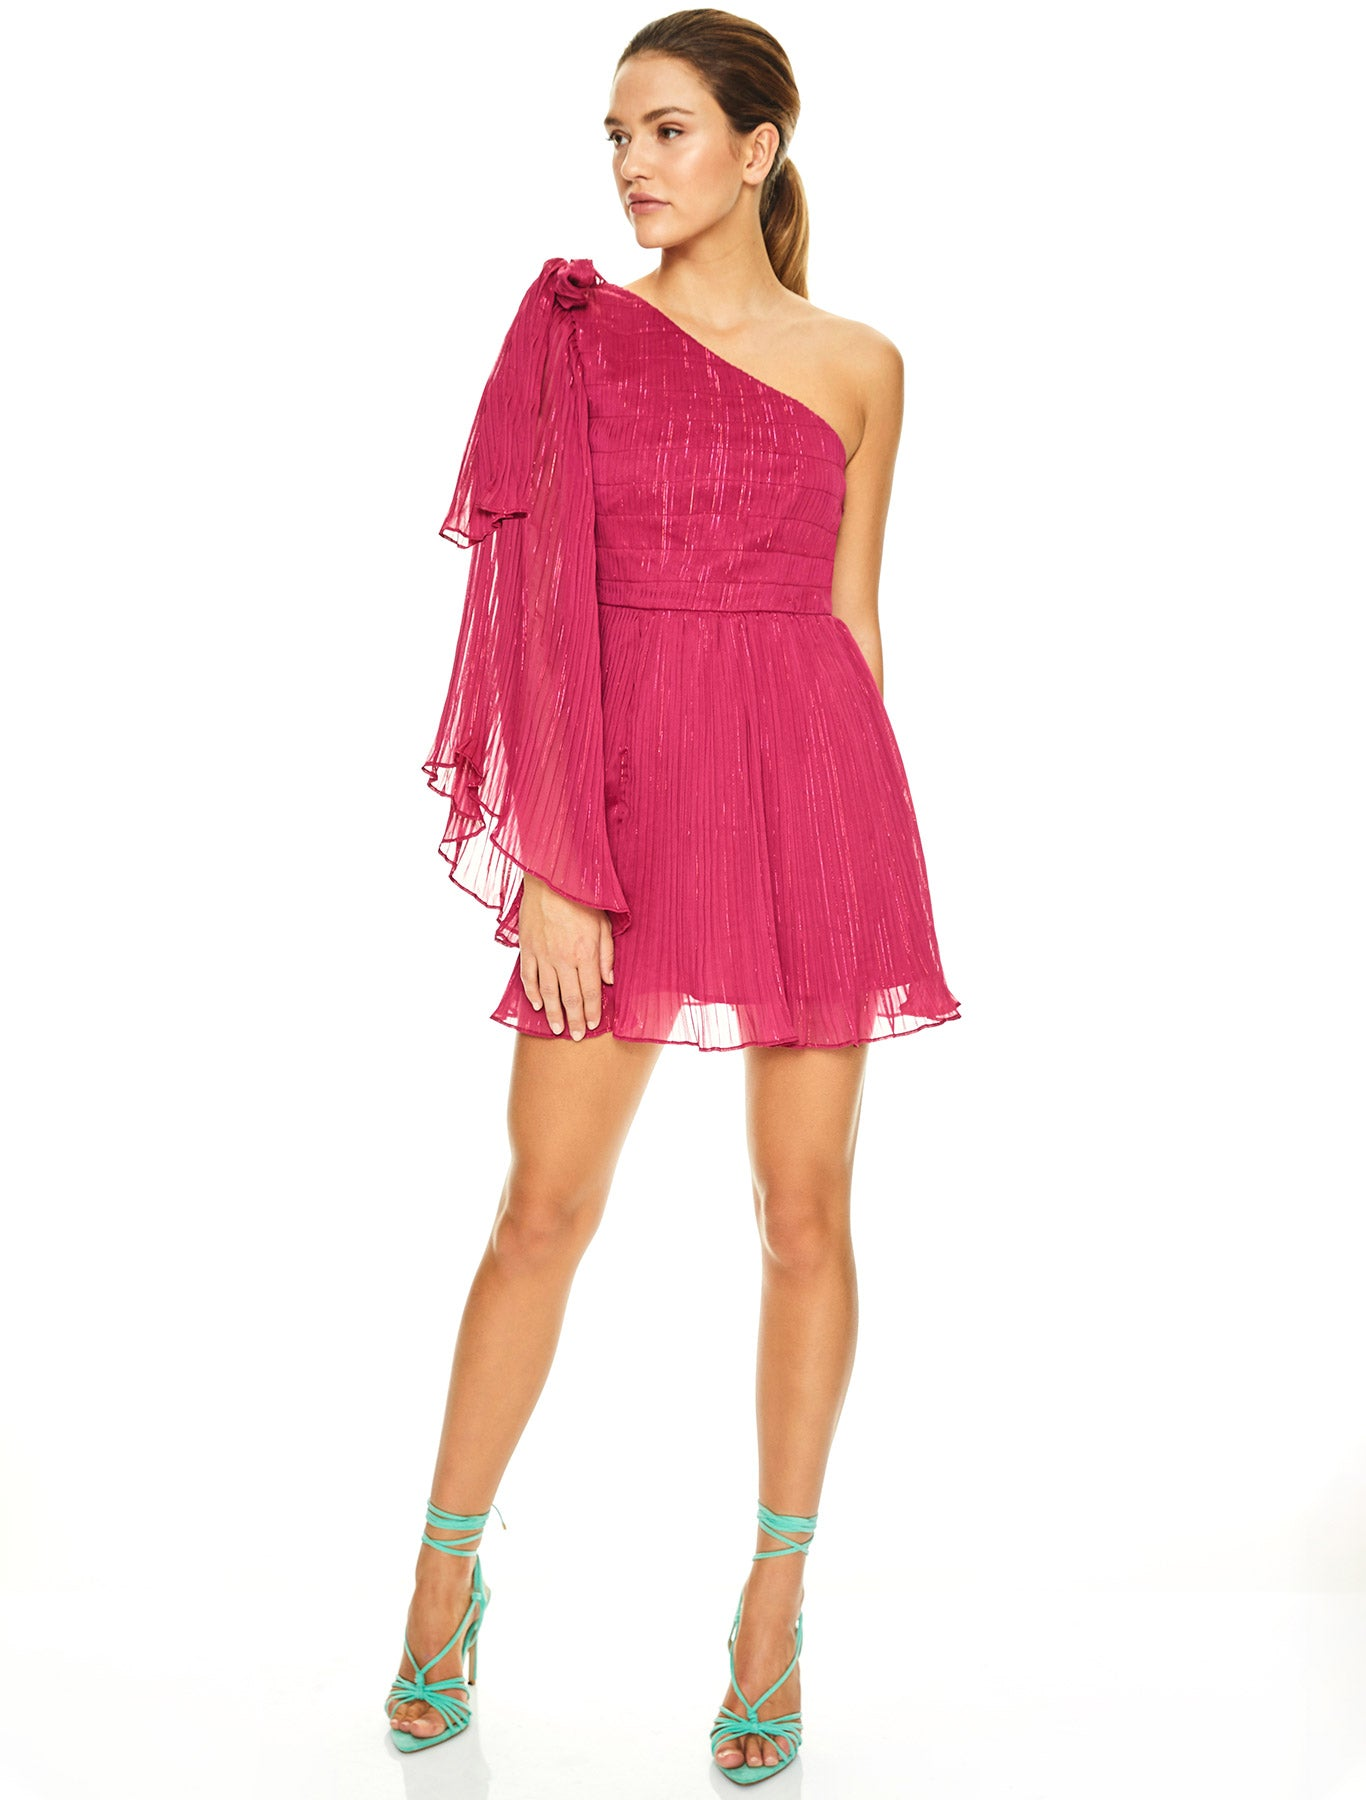 SWEET SANGRIA MINI DRESS